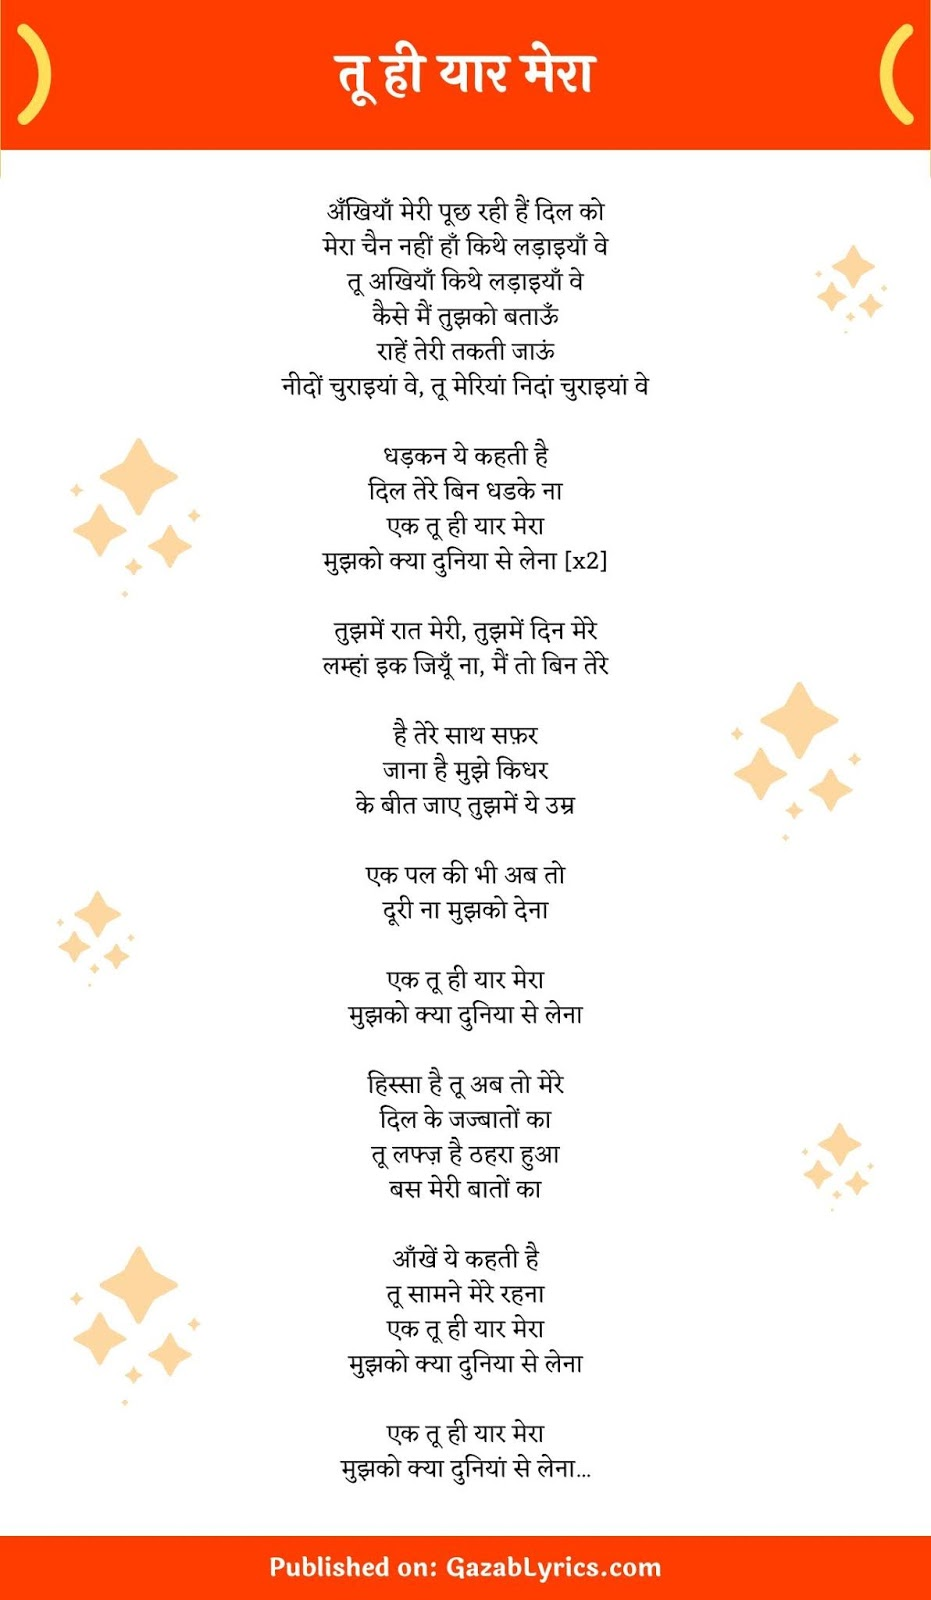 Tu Hi Yaar Mera song lyrics image